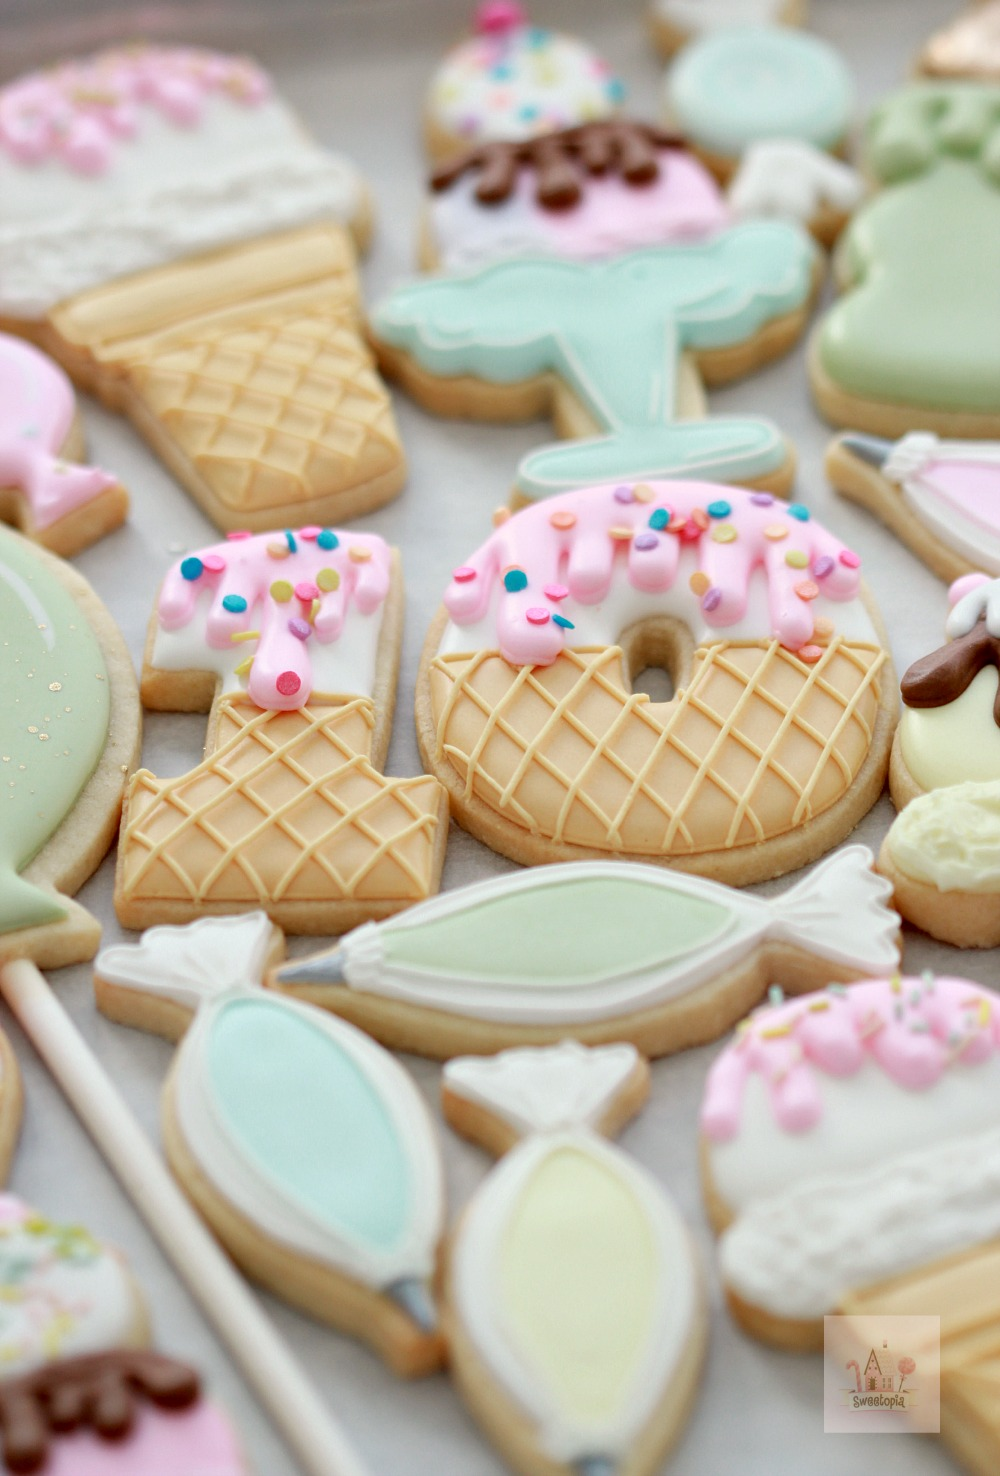 Birthday Ice Cream Decorated Cookies